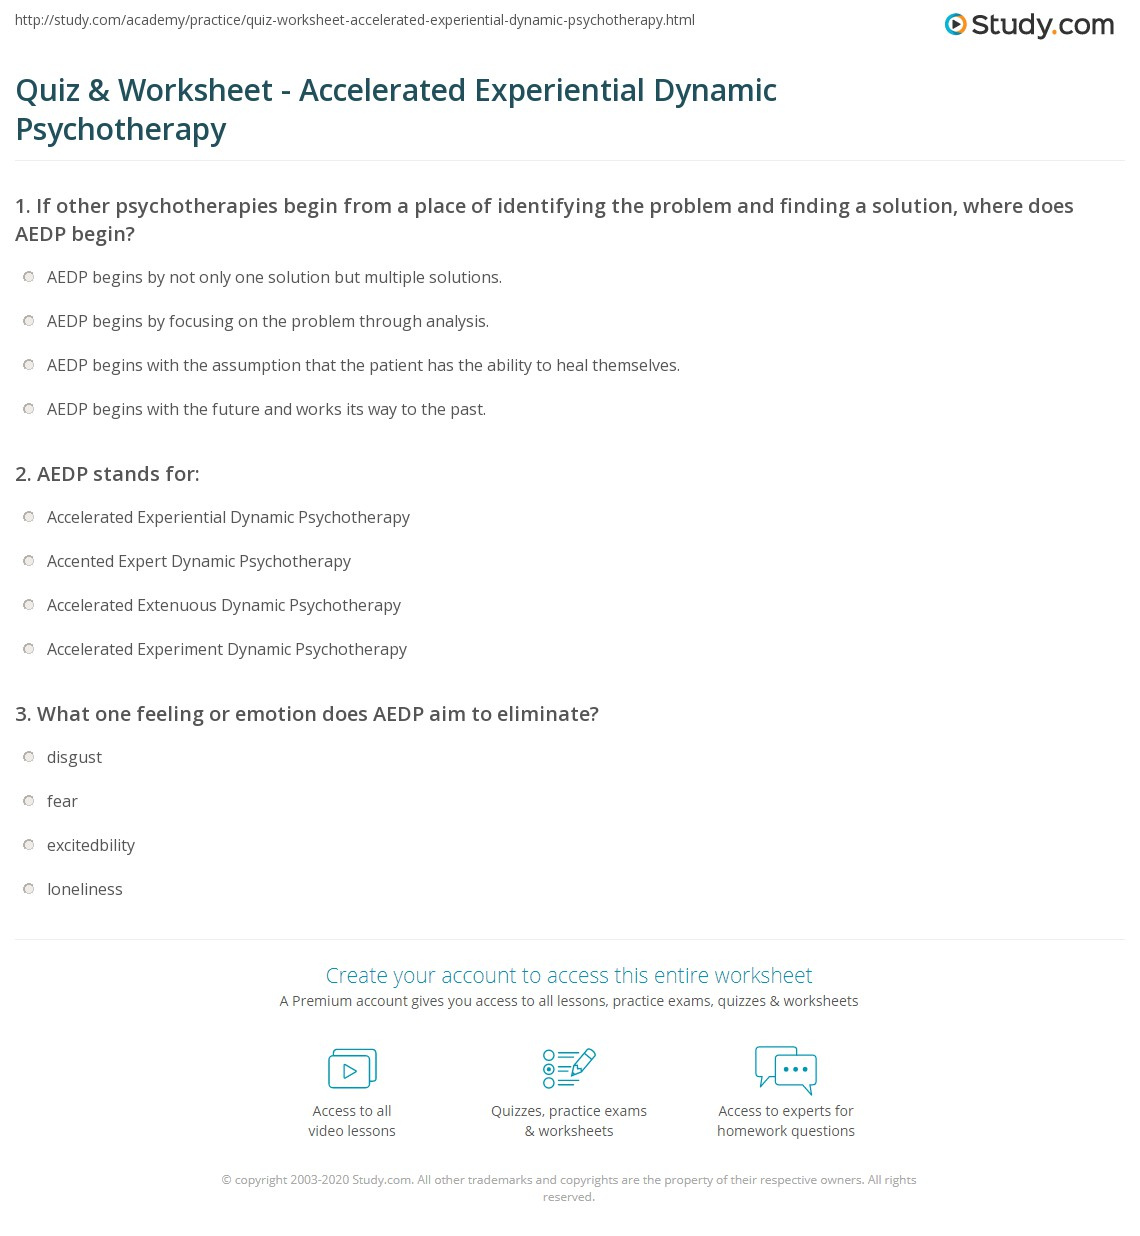 Quiz Worksheet Accelerated Experiential Dynamic